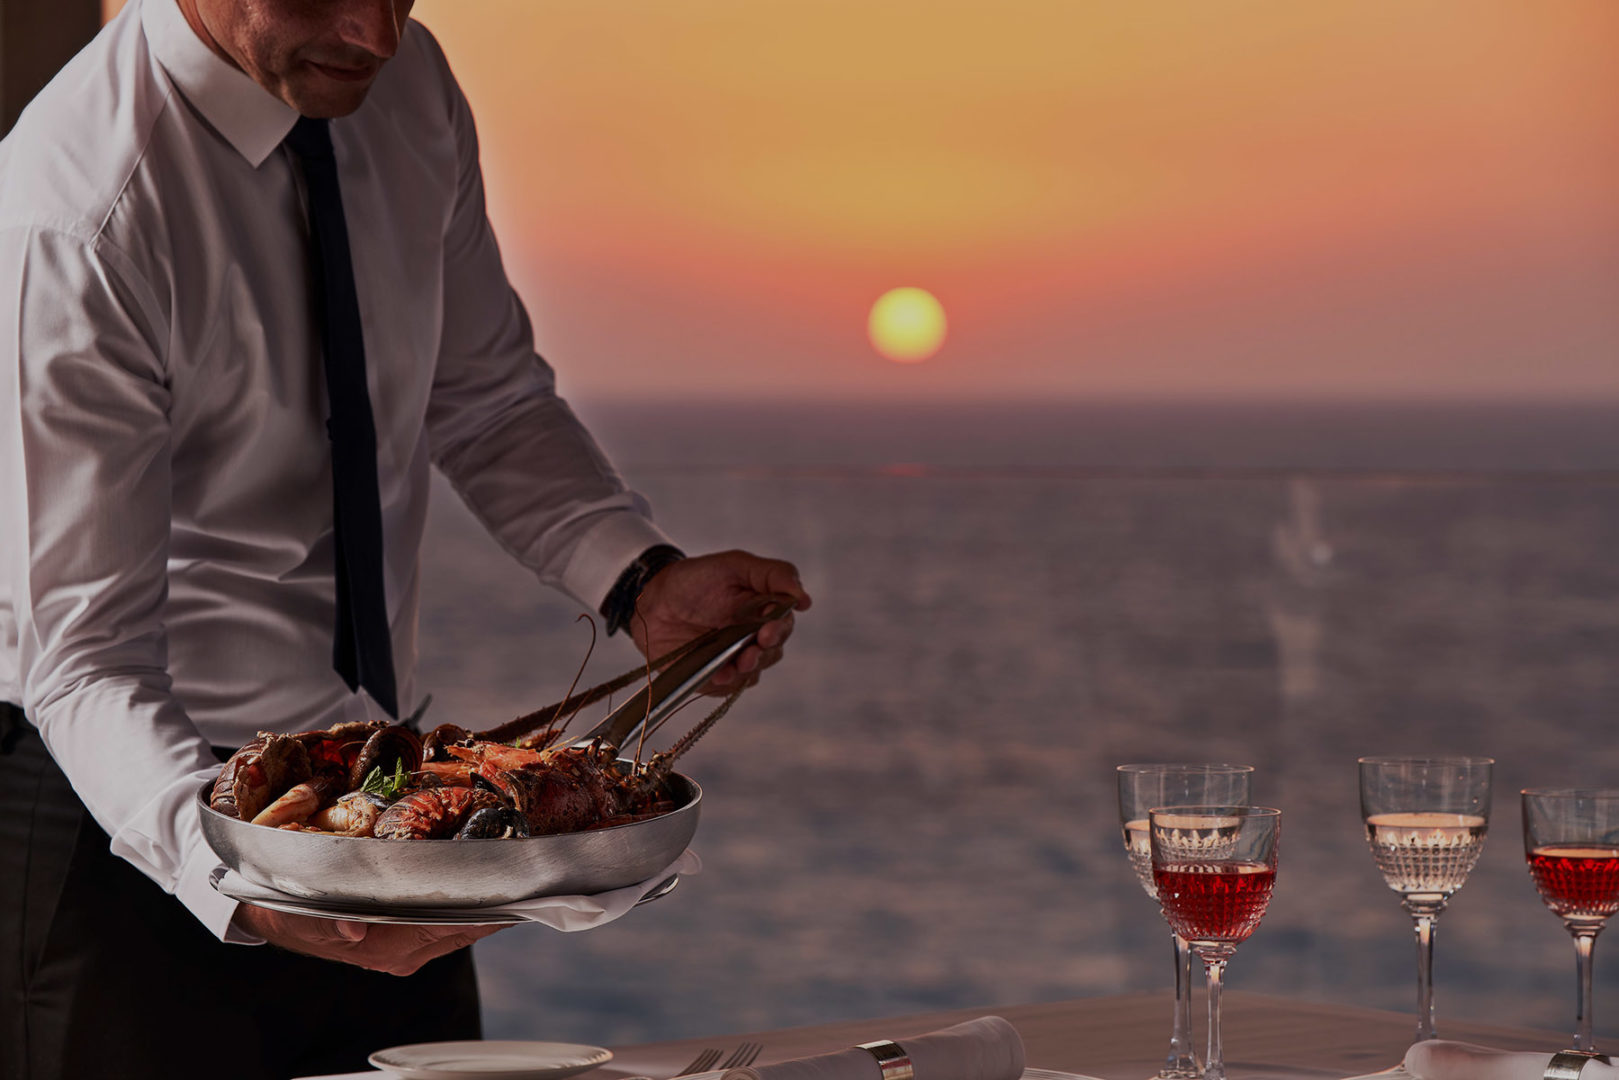 <h1>Unique Sunset Experiences for an unforgettable stay</h1>